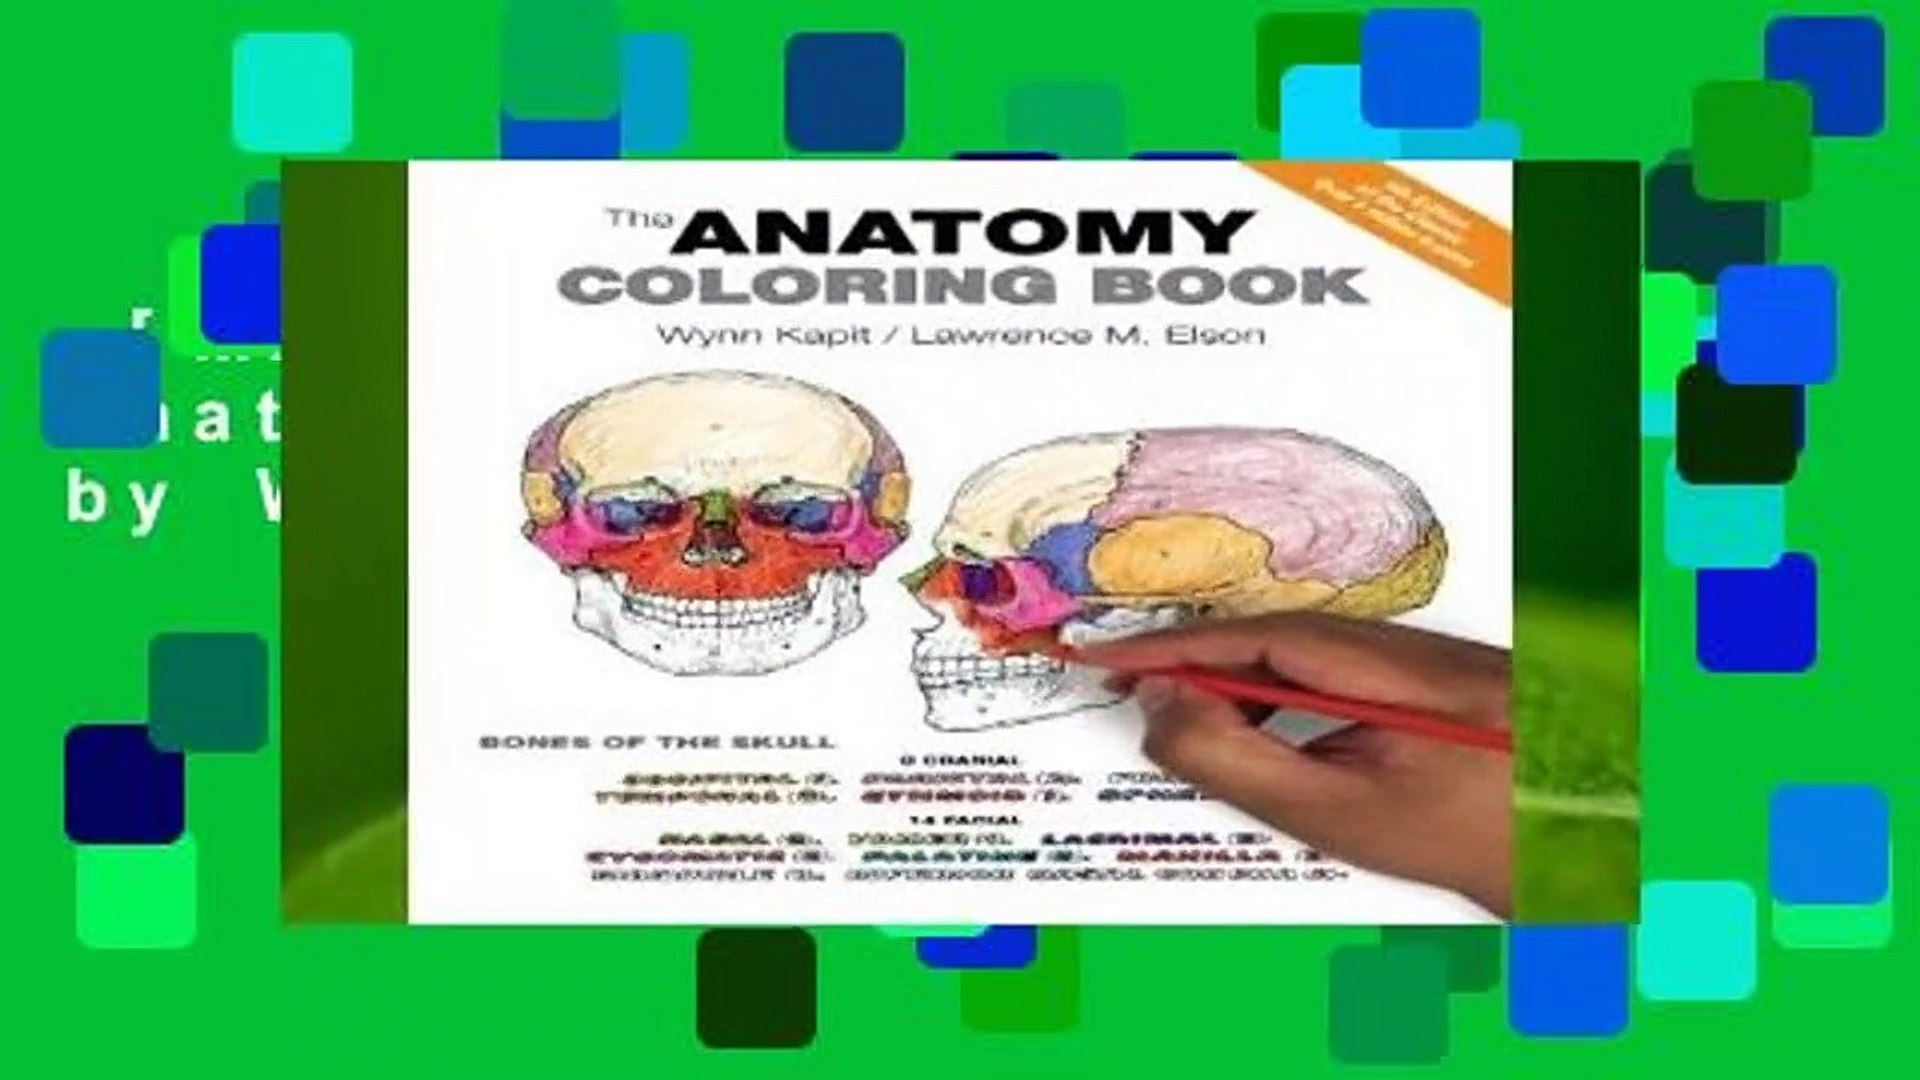 [MOST WISHED] The Anatomy Coloring Book by Wynn Kapit